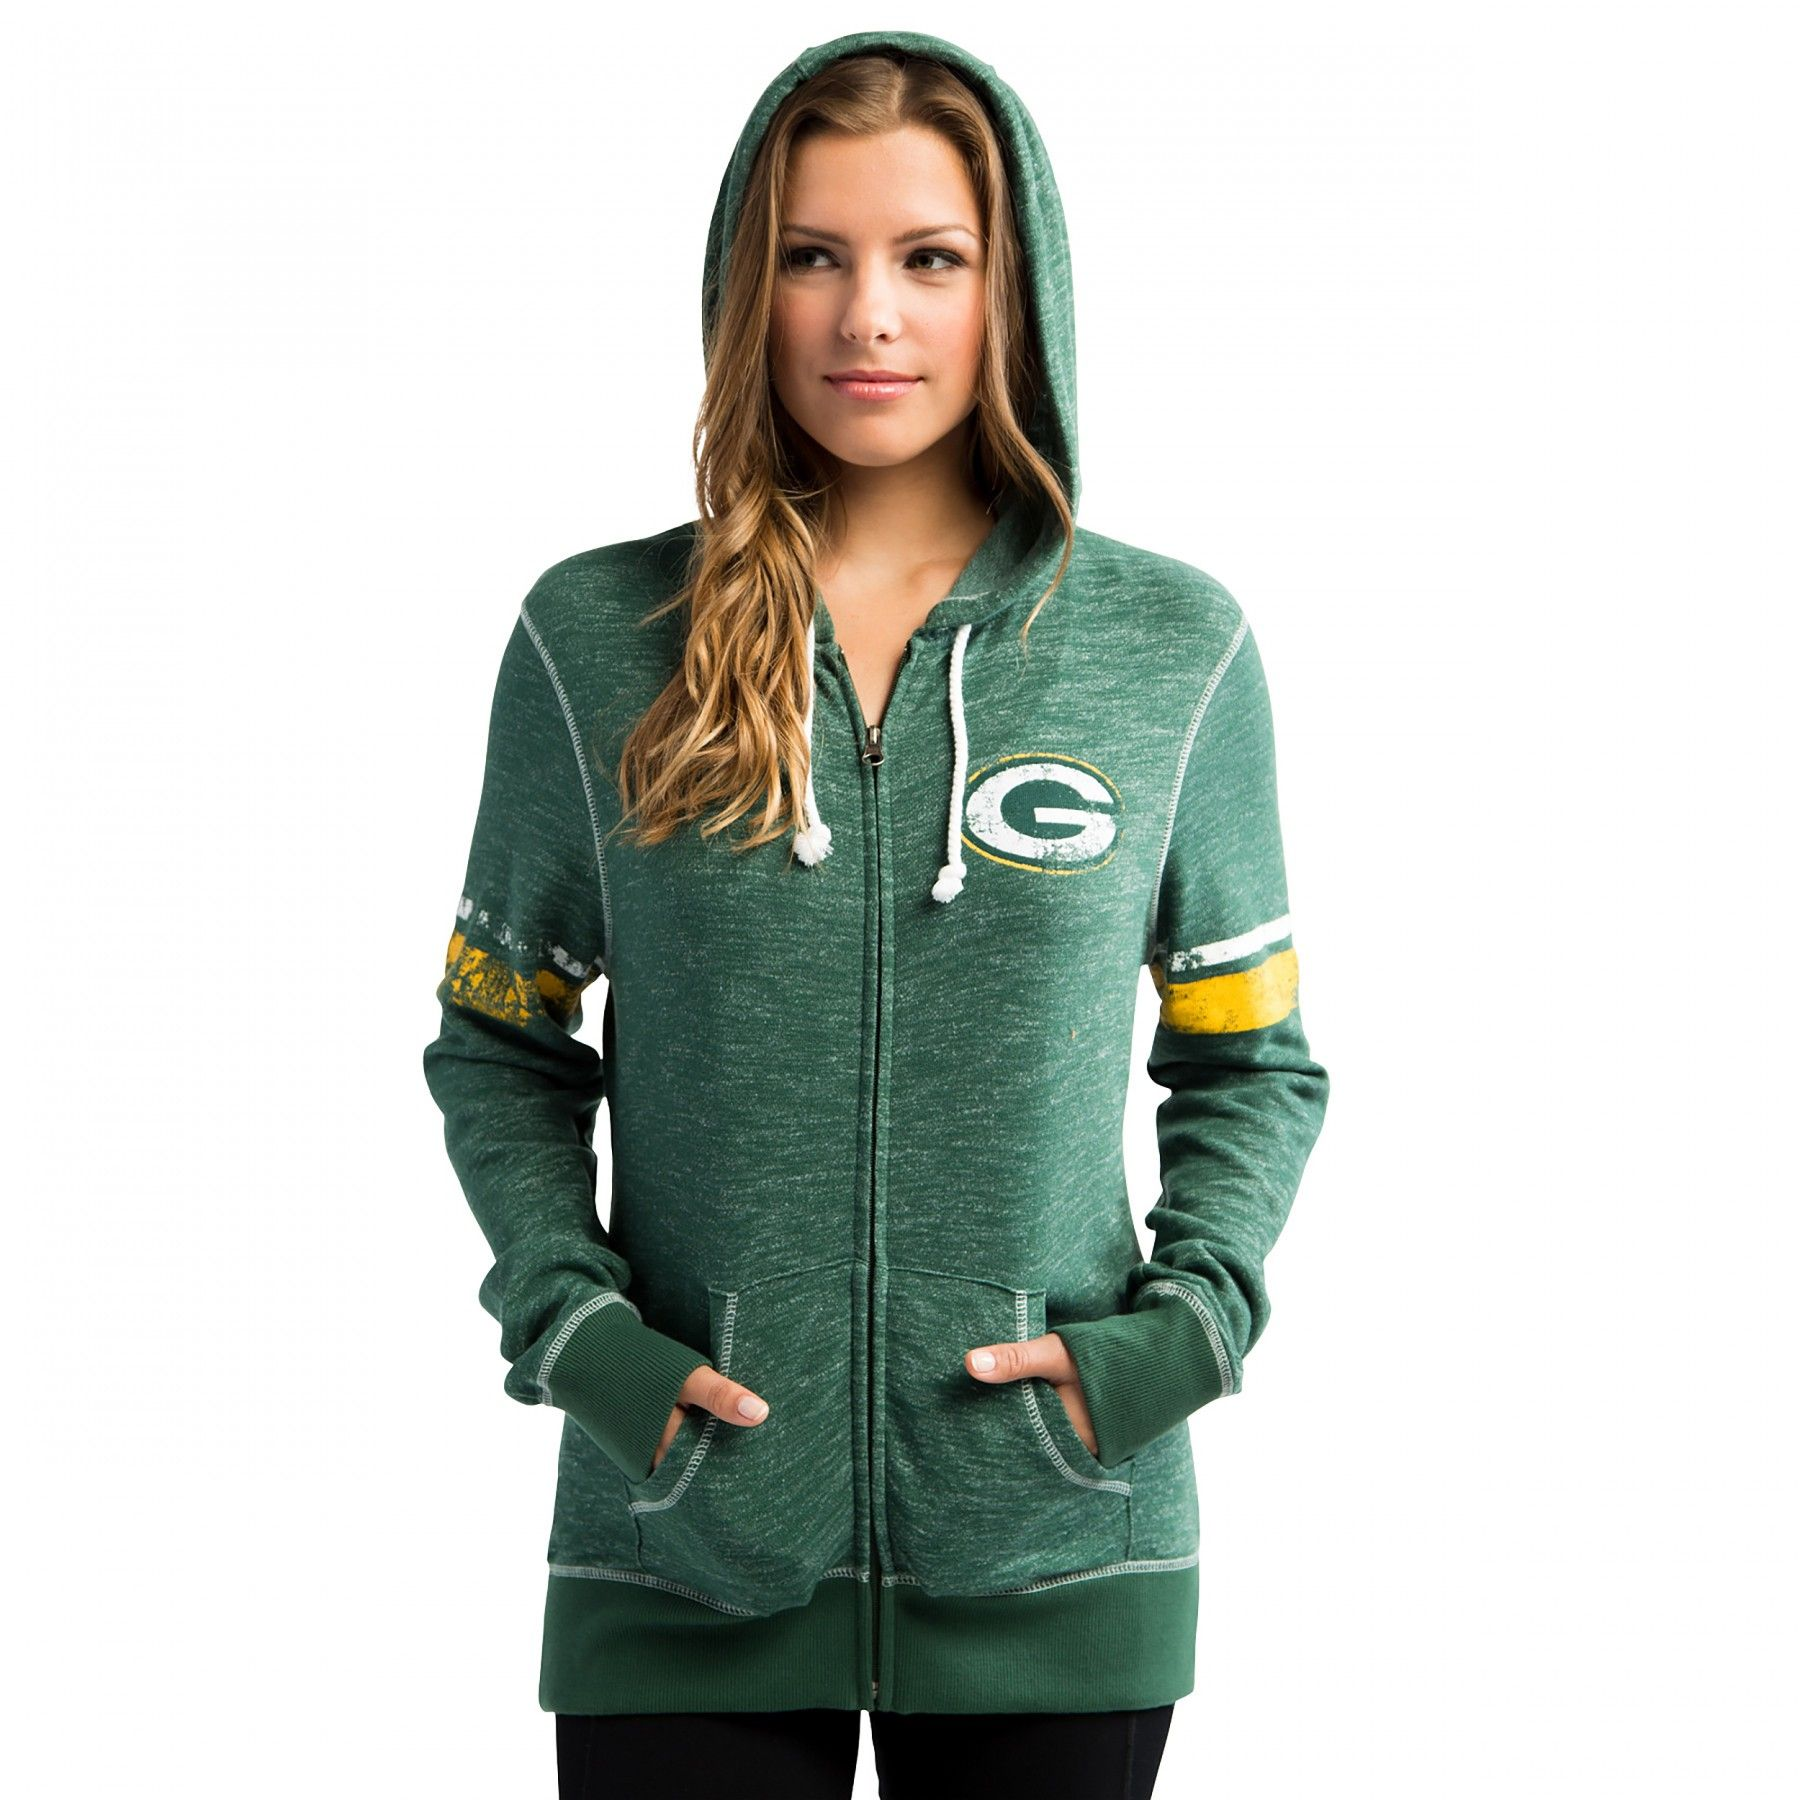 Packers Women 39 S Athletic Tradition Full Zip Hoodie At The Packers Pro Shop Hoodies Hoodies Womens Athletic Women